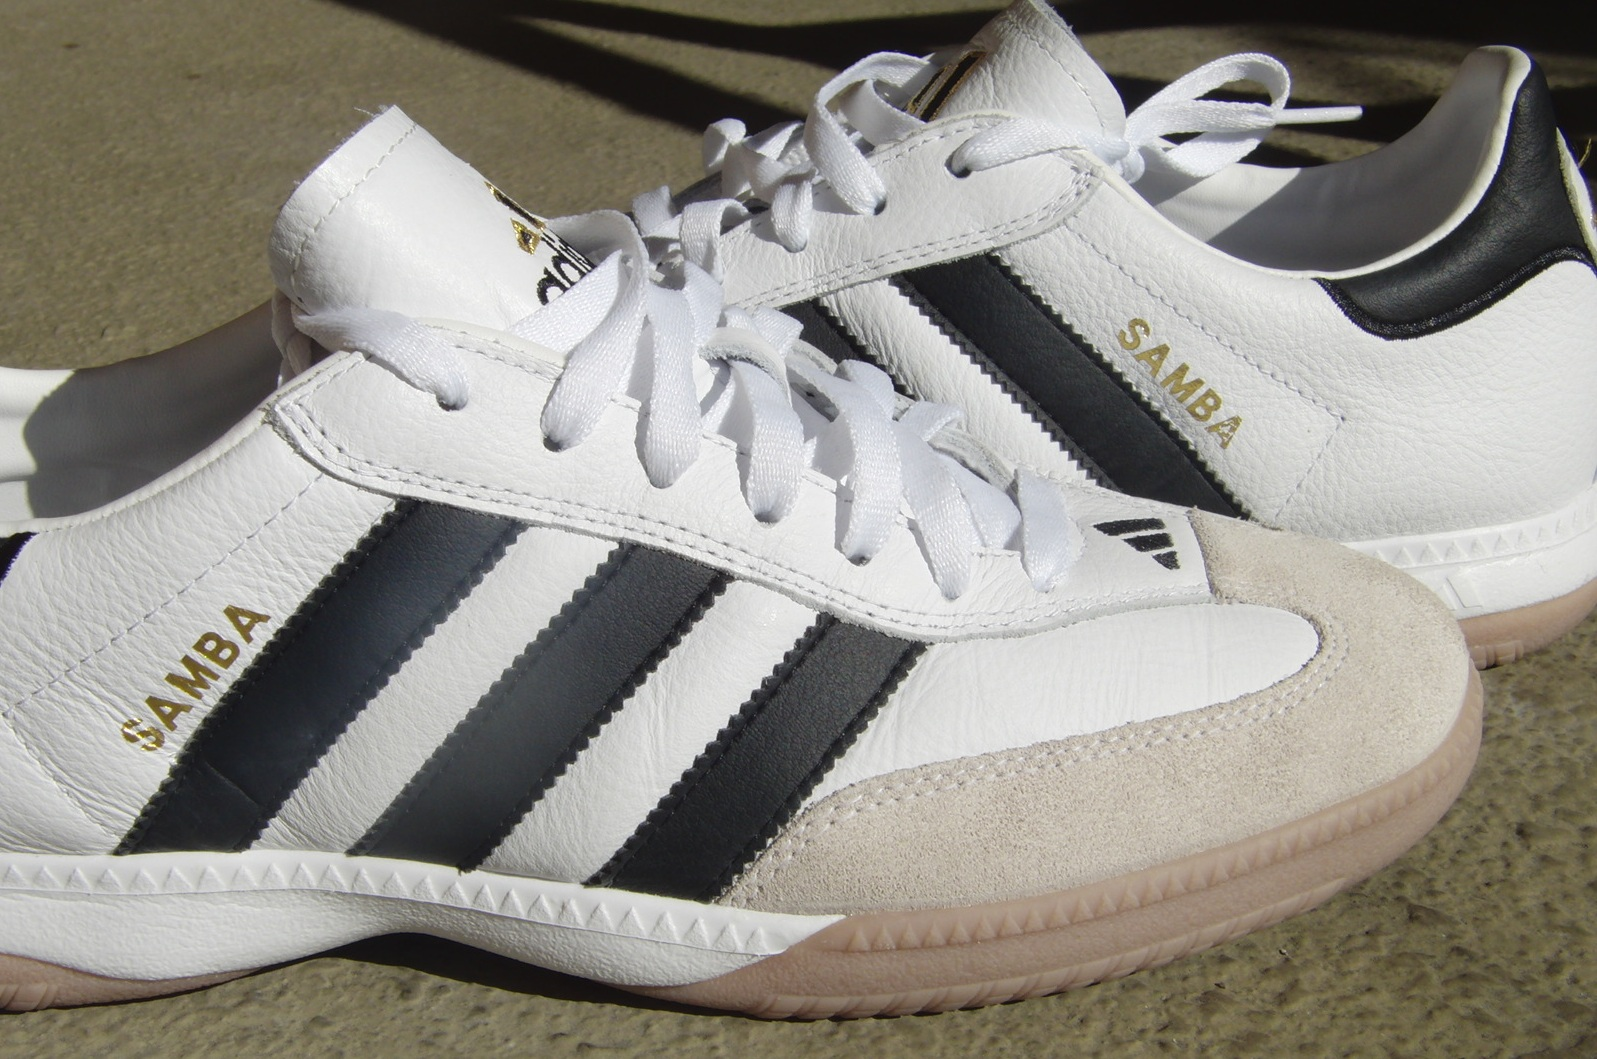 new arrivals adidas samba indoor soccer shoes review e7705 f61c9